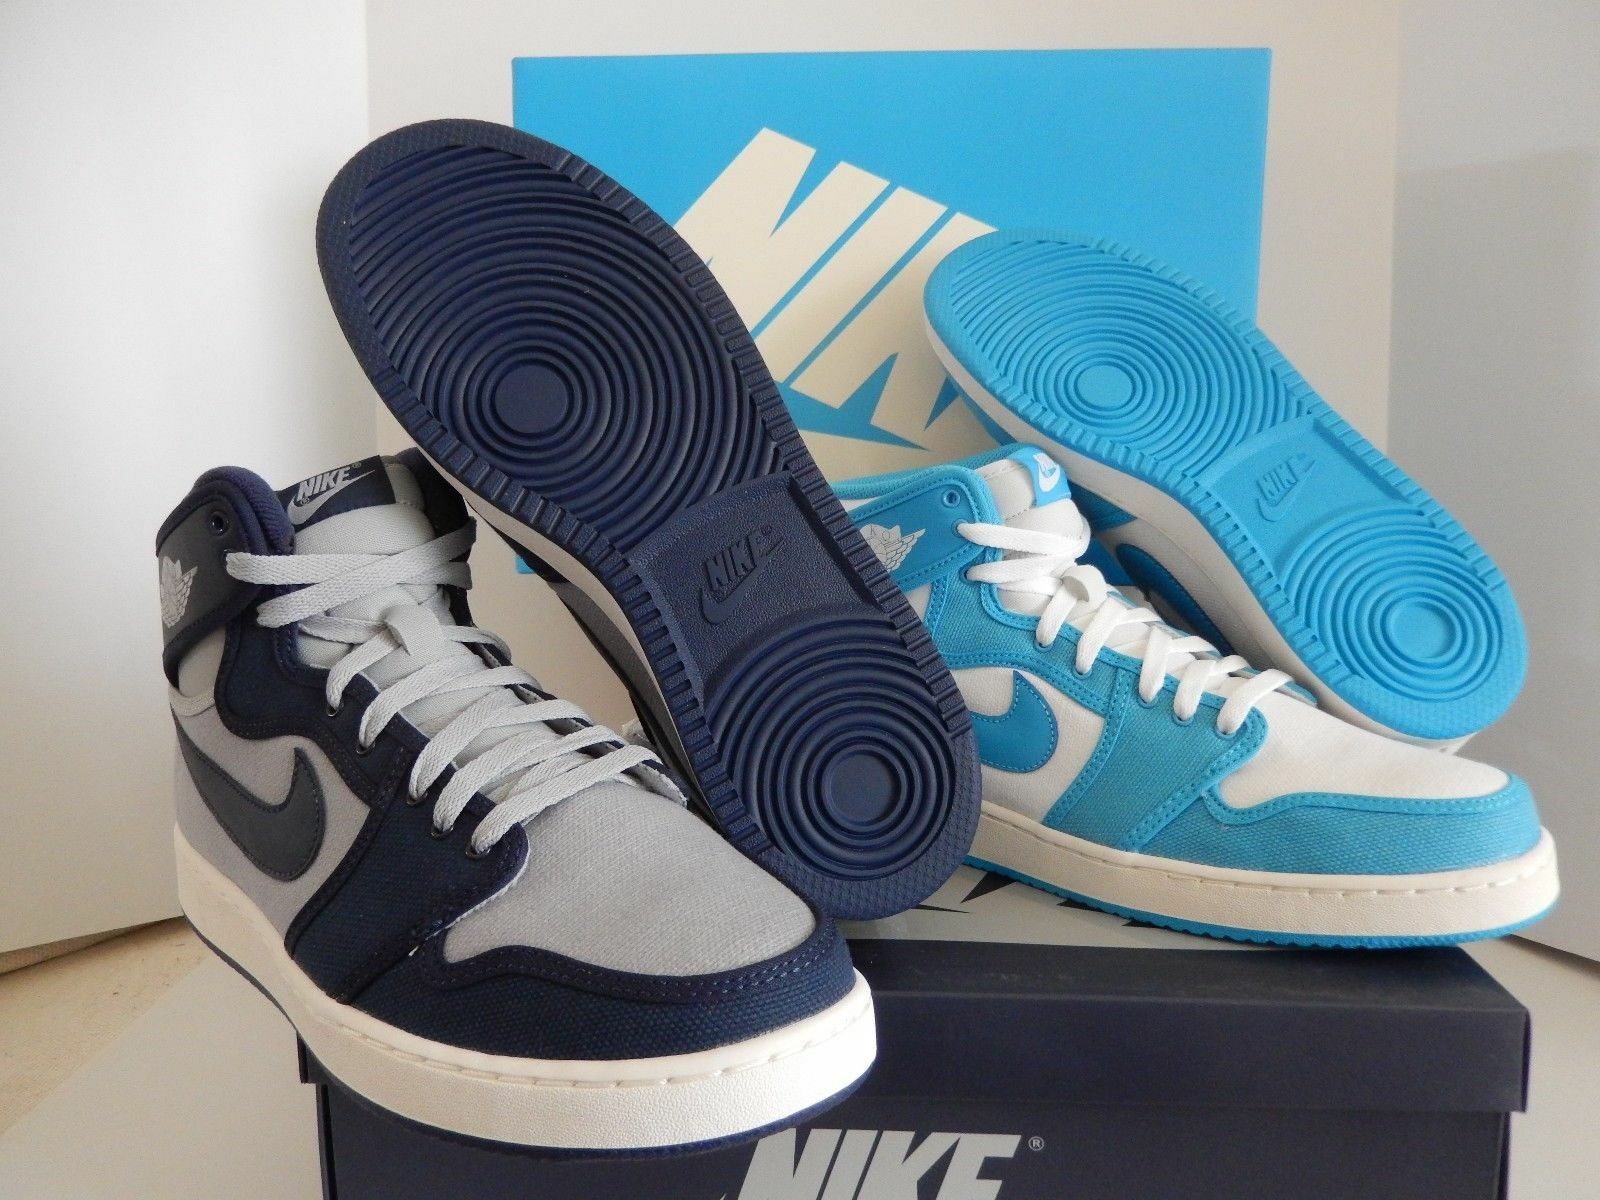 NIKE AIR JORDAN AJ1 KO HIGH OG RIVALRY PACK UNC/GEORGETOWN SZ 9.5 [655328-900]